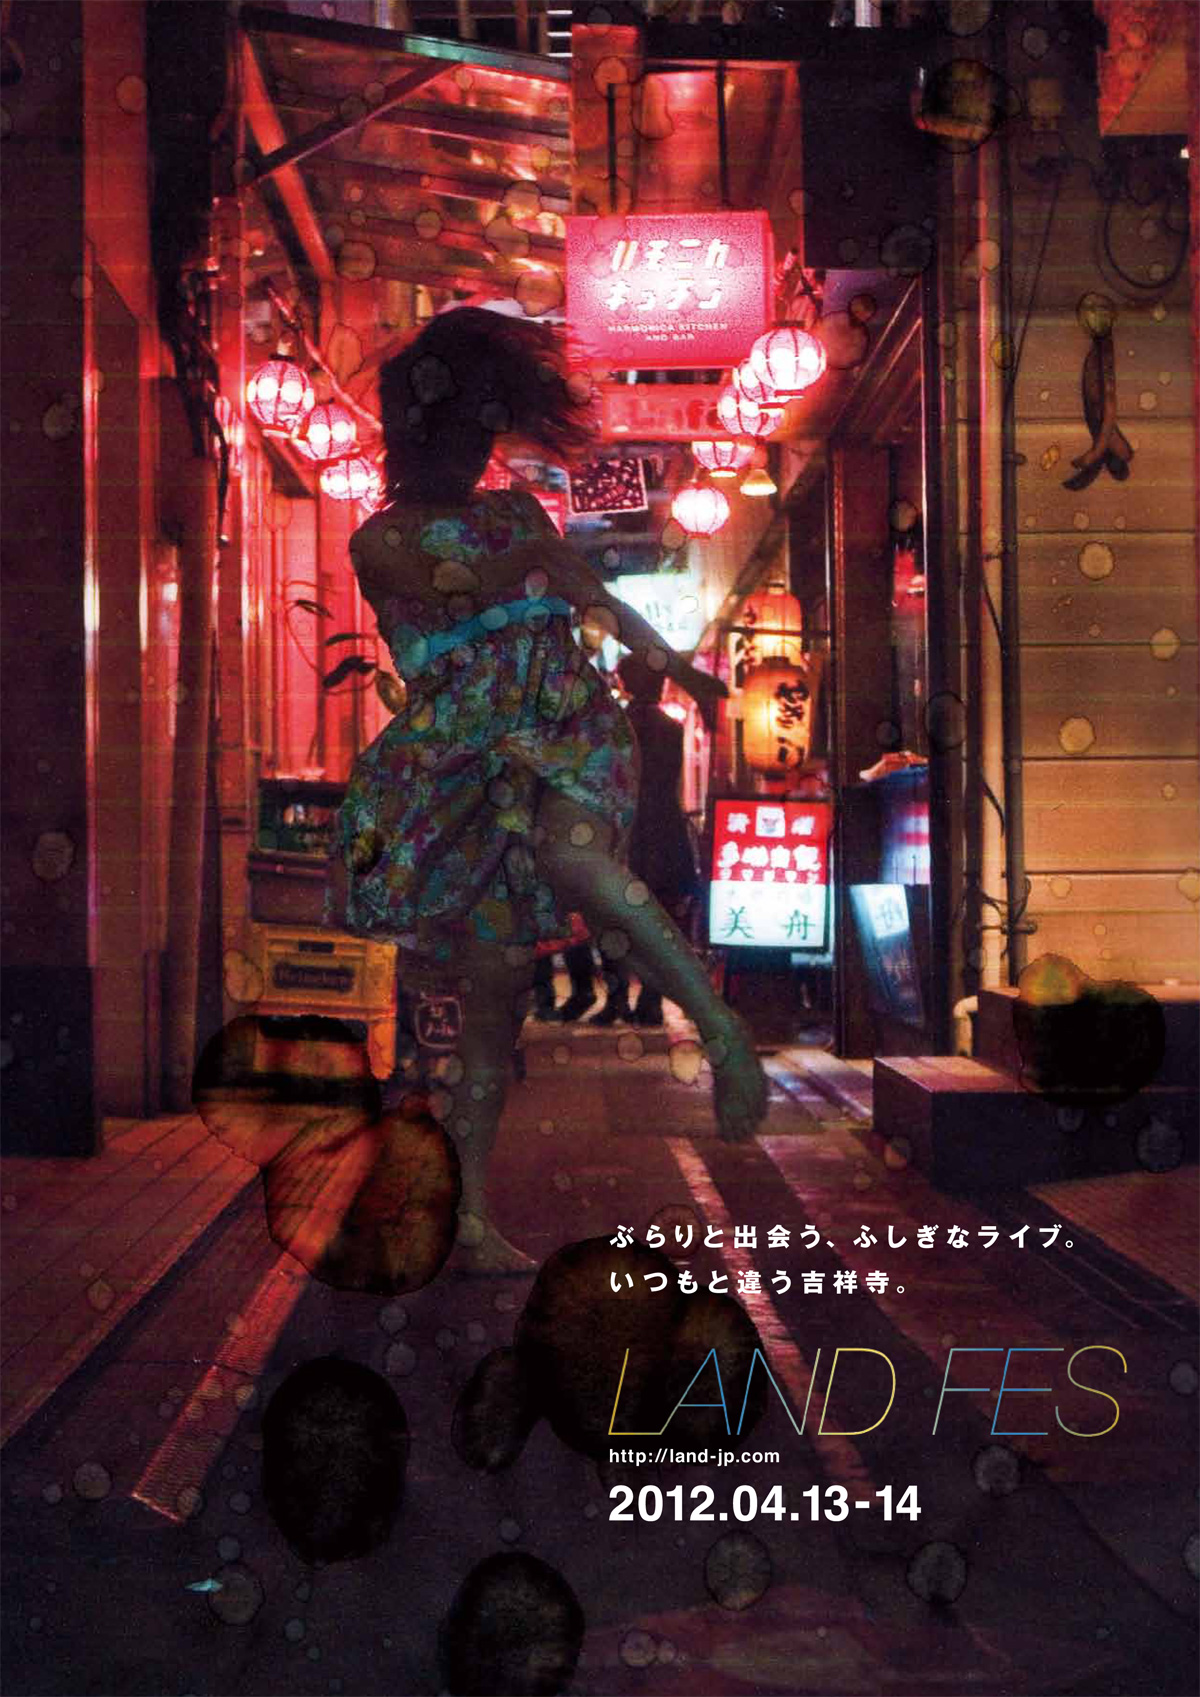 LAND-FES-flyer-for-web